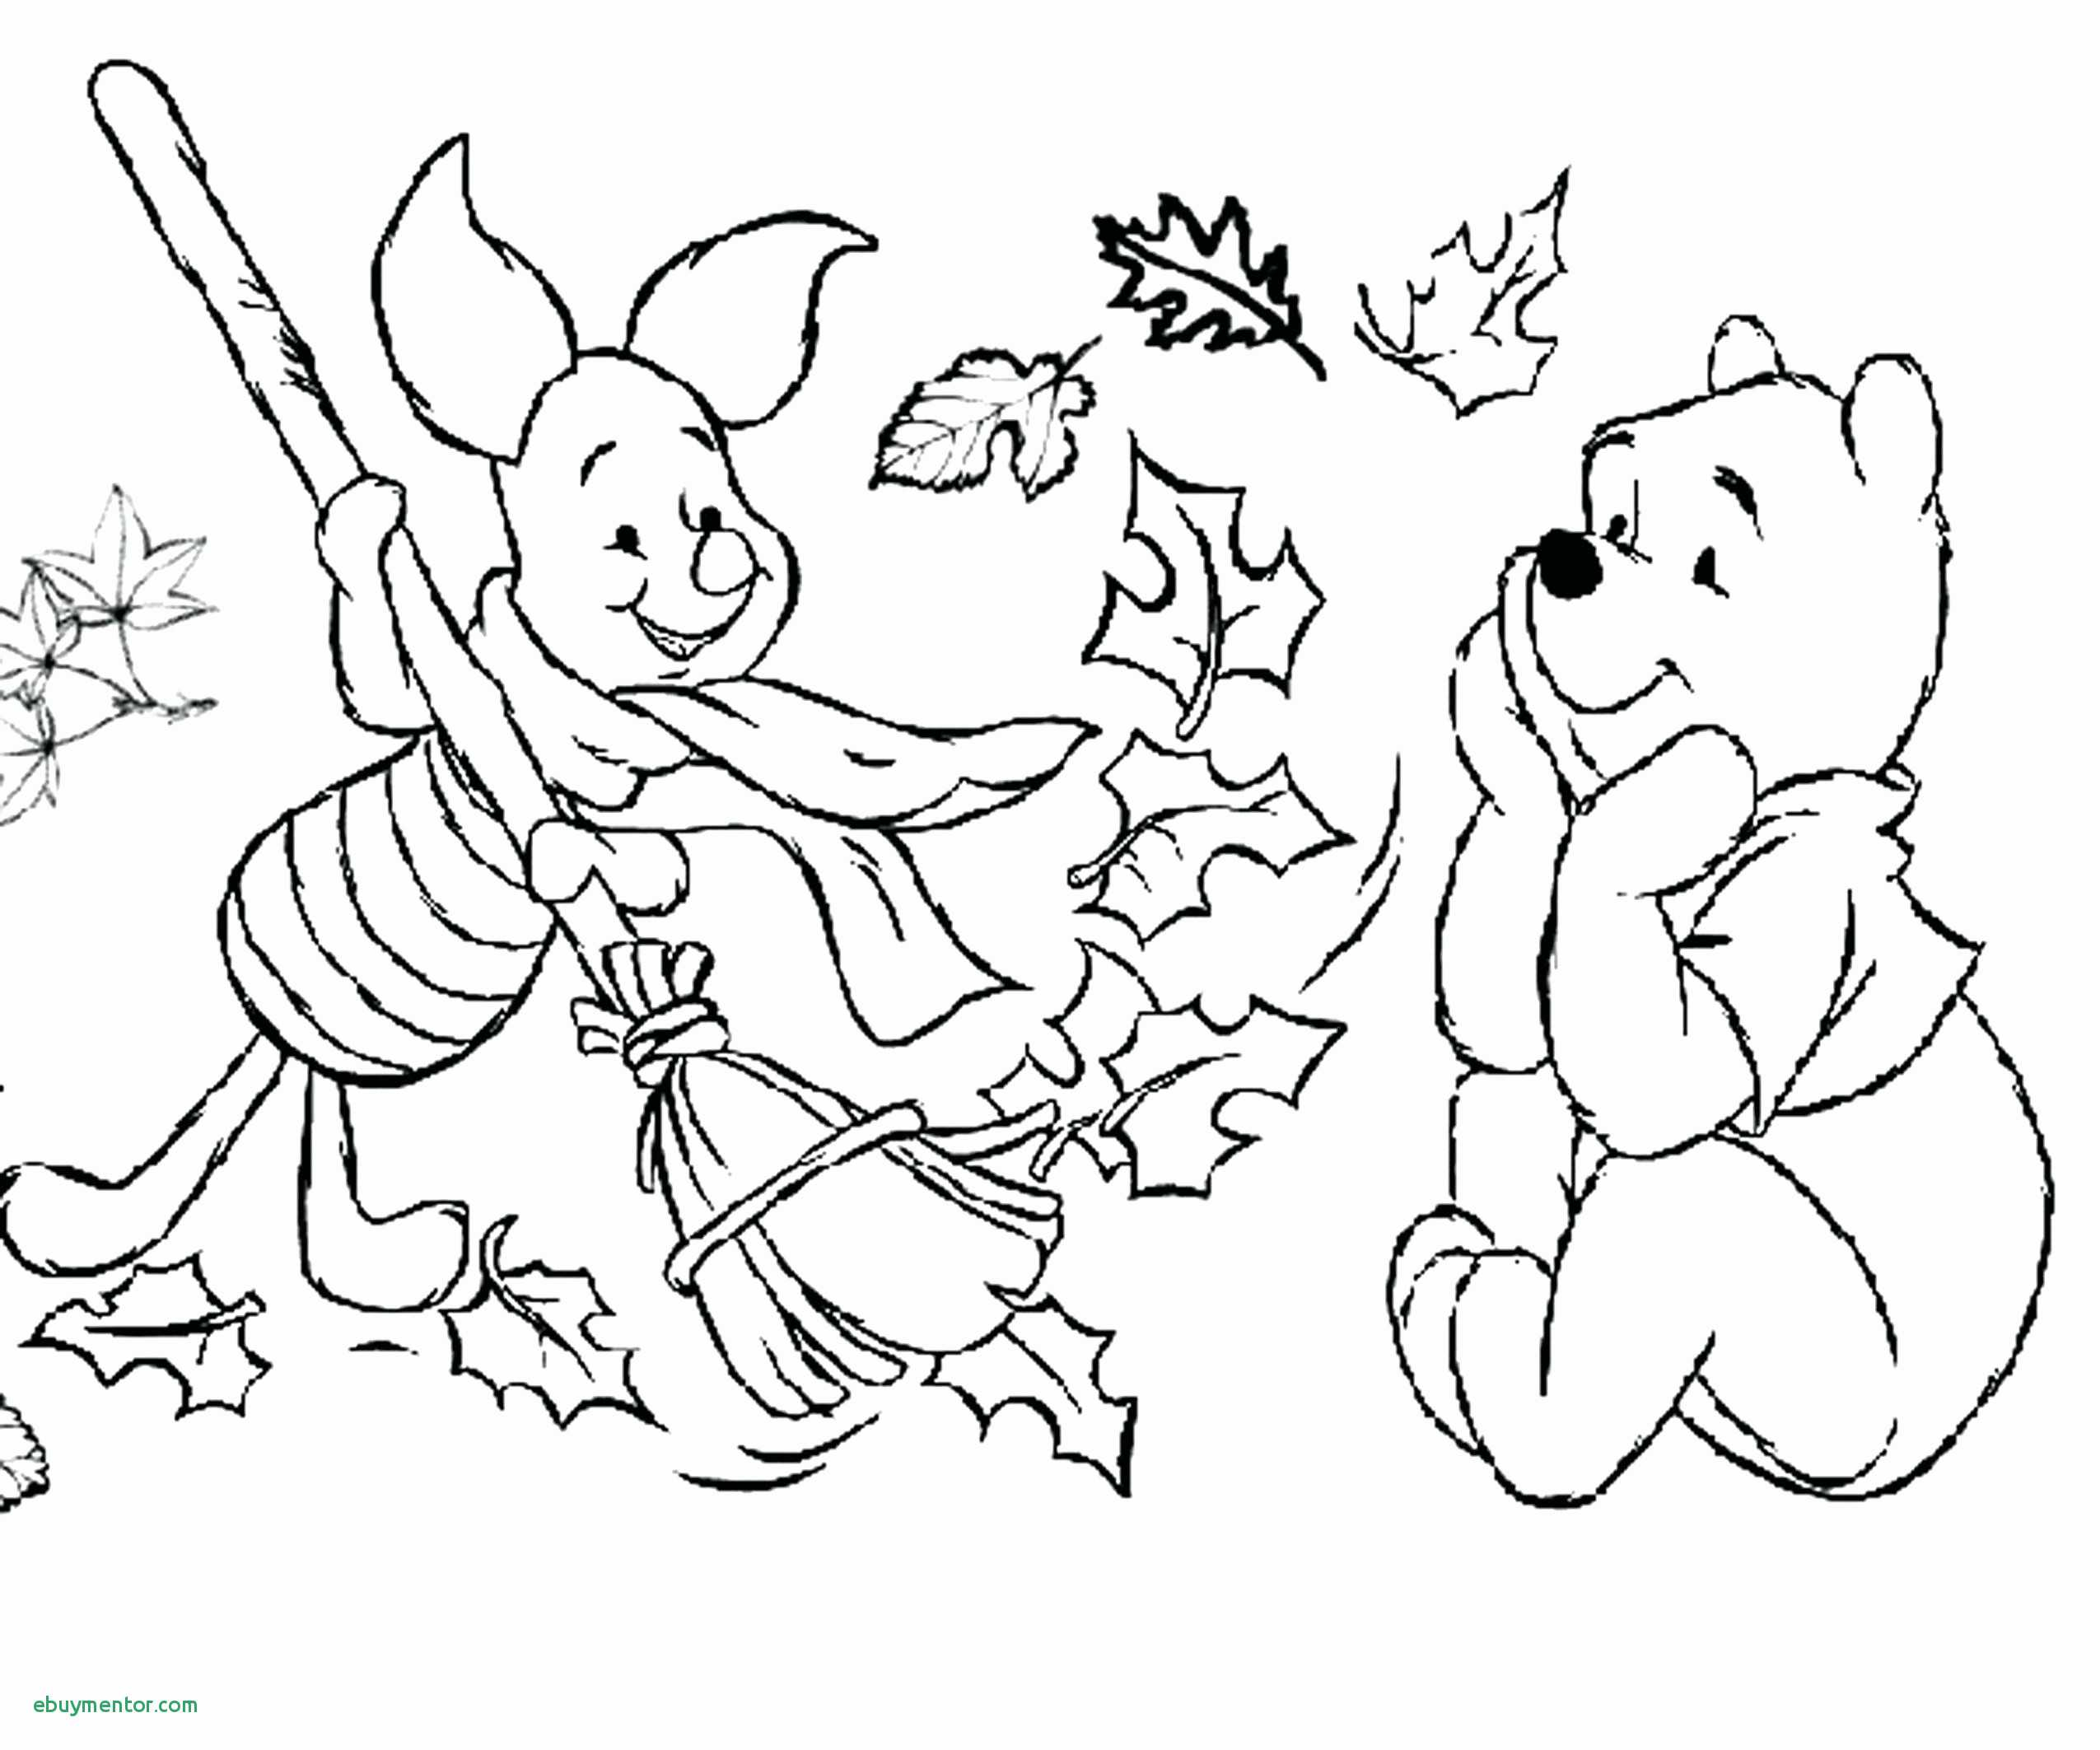 www printable coloring pages Download-Www Printable Coloring Pages 8-b